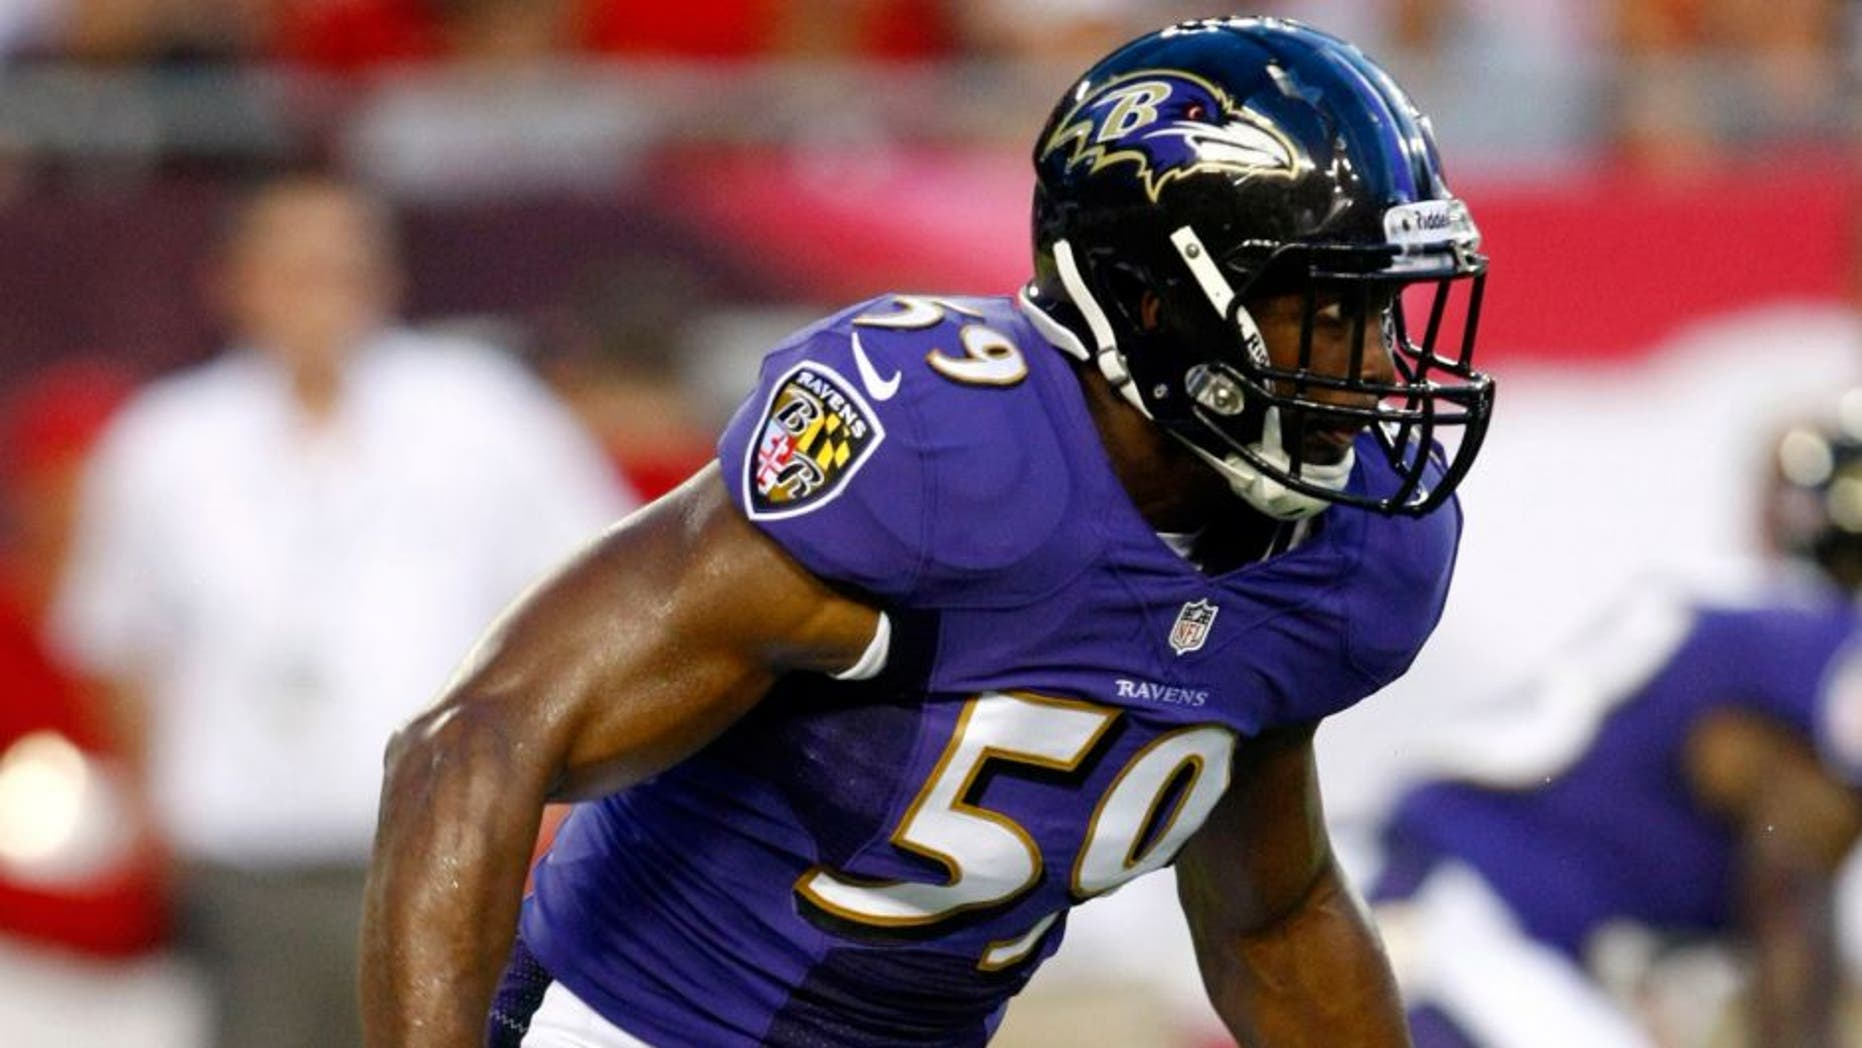 Aug 8, 2013; Tampa, FL, USA; Baltimore Ravens inside linebacker Arthur Brown (59) reacts to the play during the first quarter against the Tampa Bay Buccaneers at Raymond James Stadium. Mandatory Credit: Douglas Jones-USA TODAY Sports